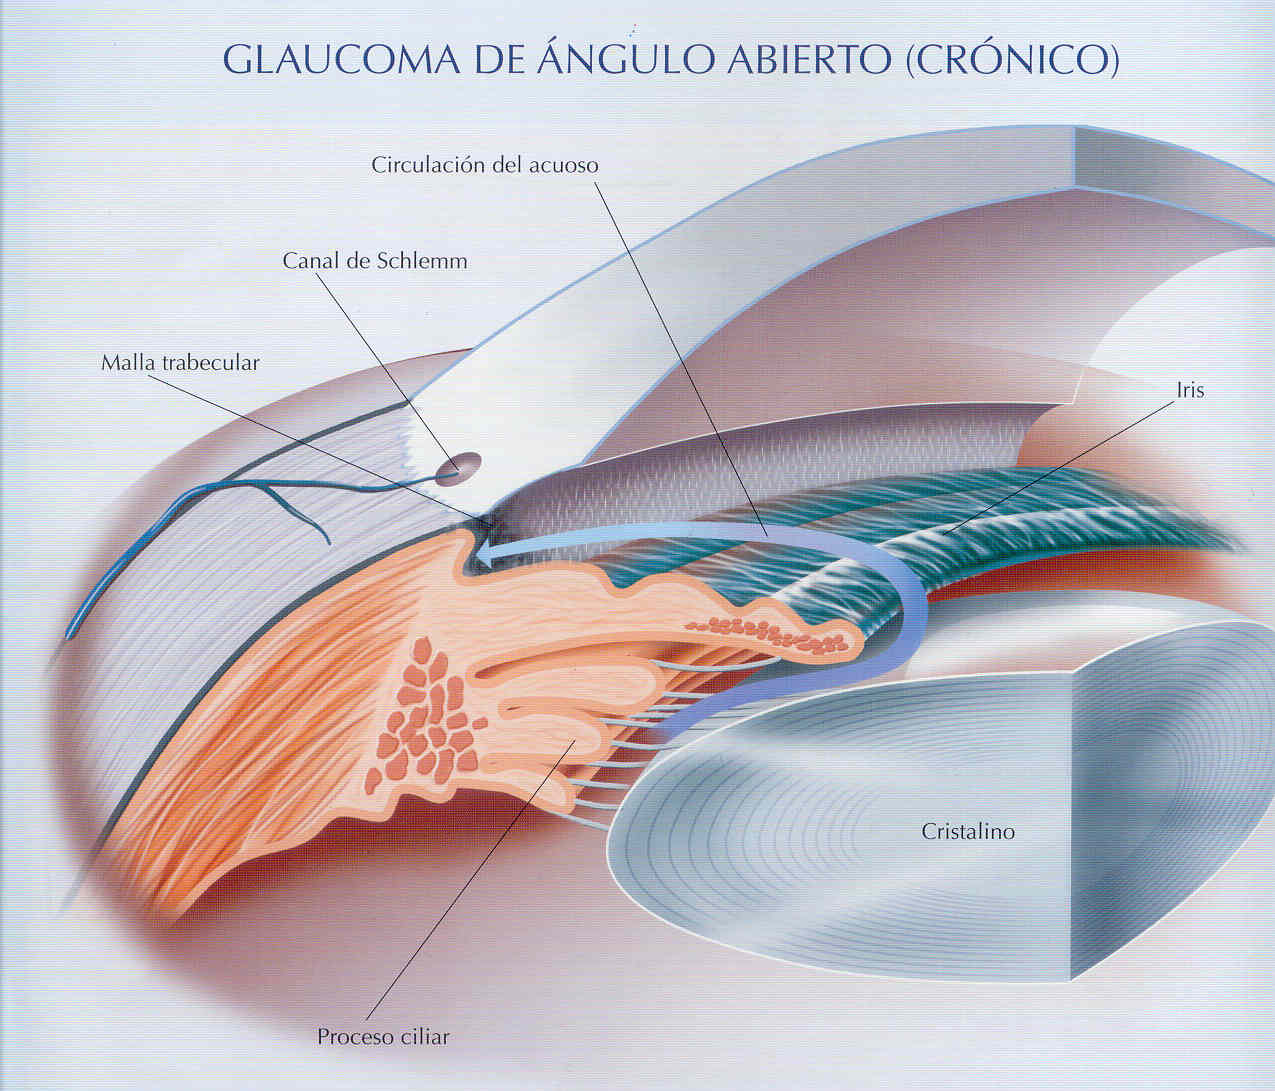 GLAUCOMA ANG ABIERTO.jpg